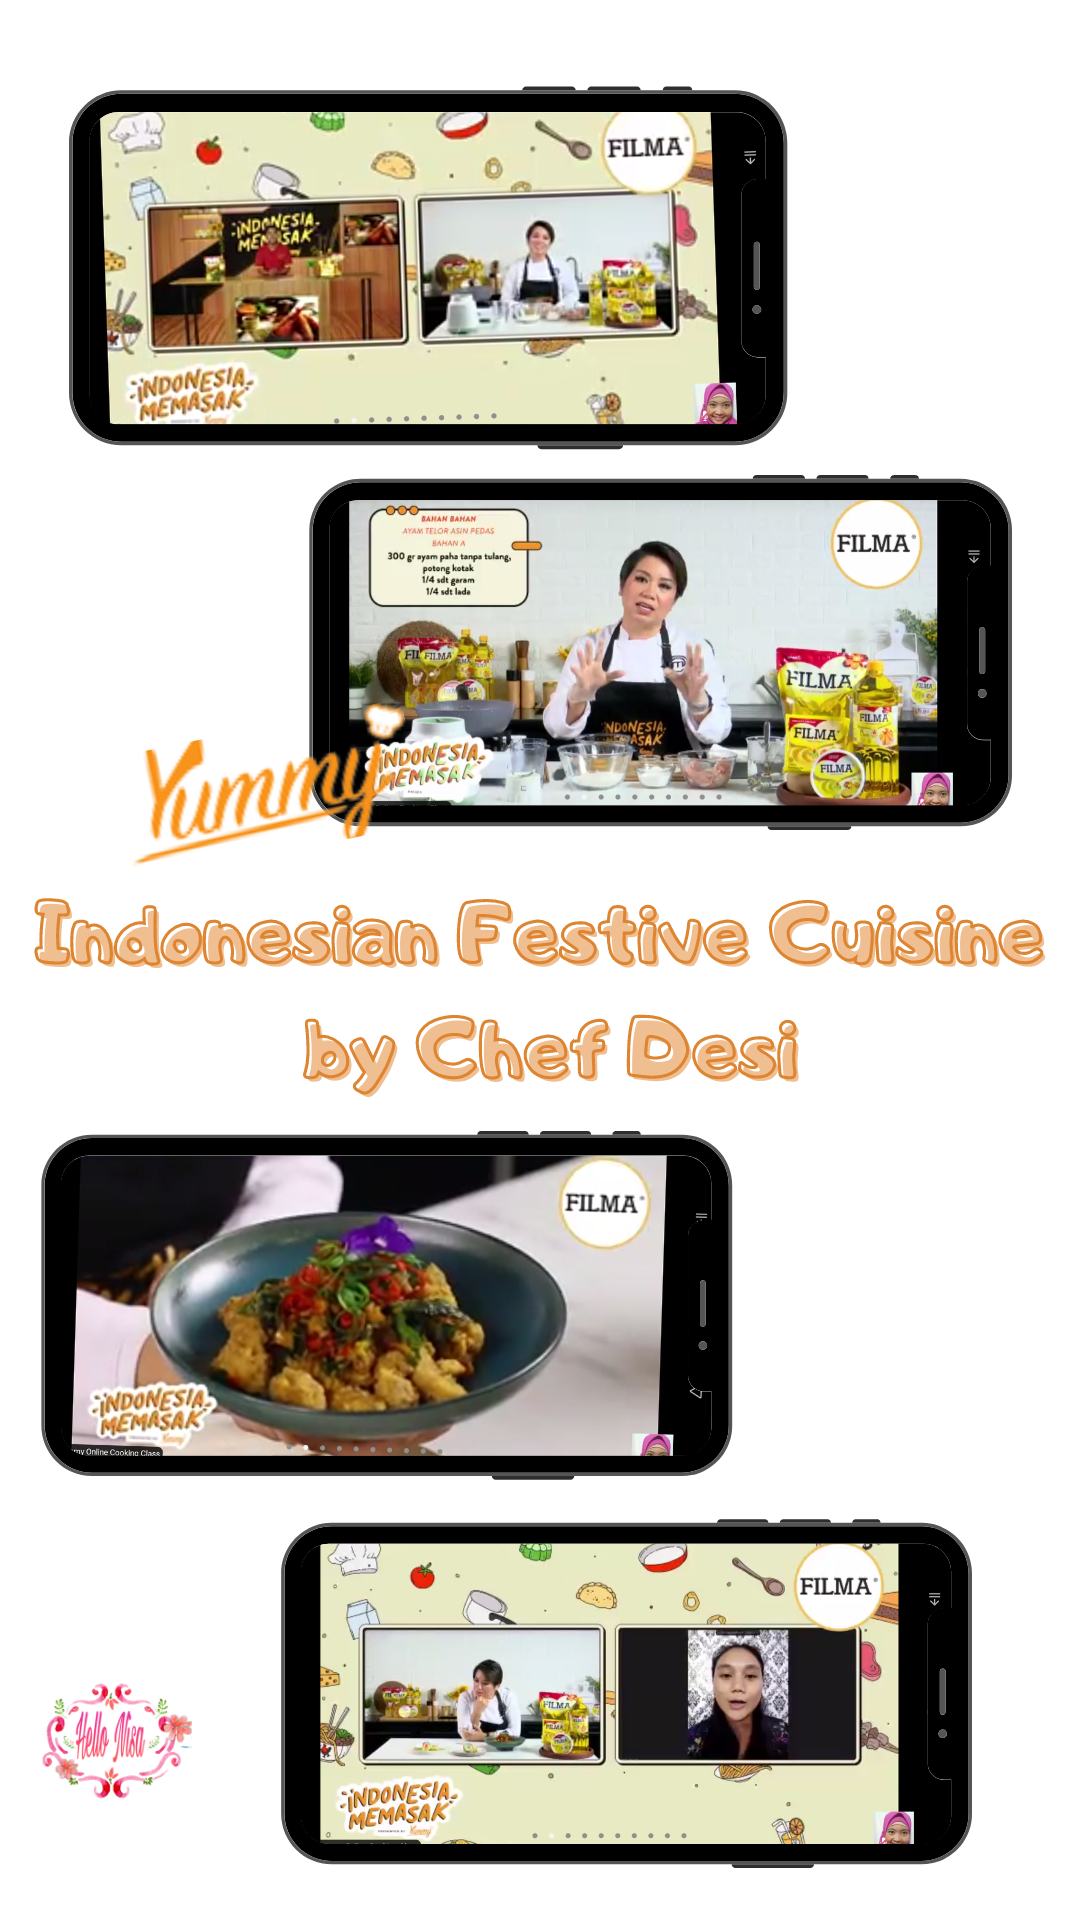 Indonsian festive cuisine by chef desi